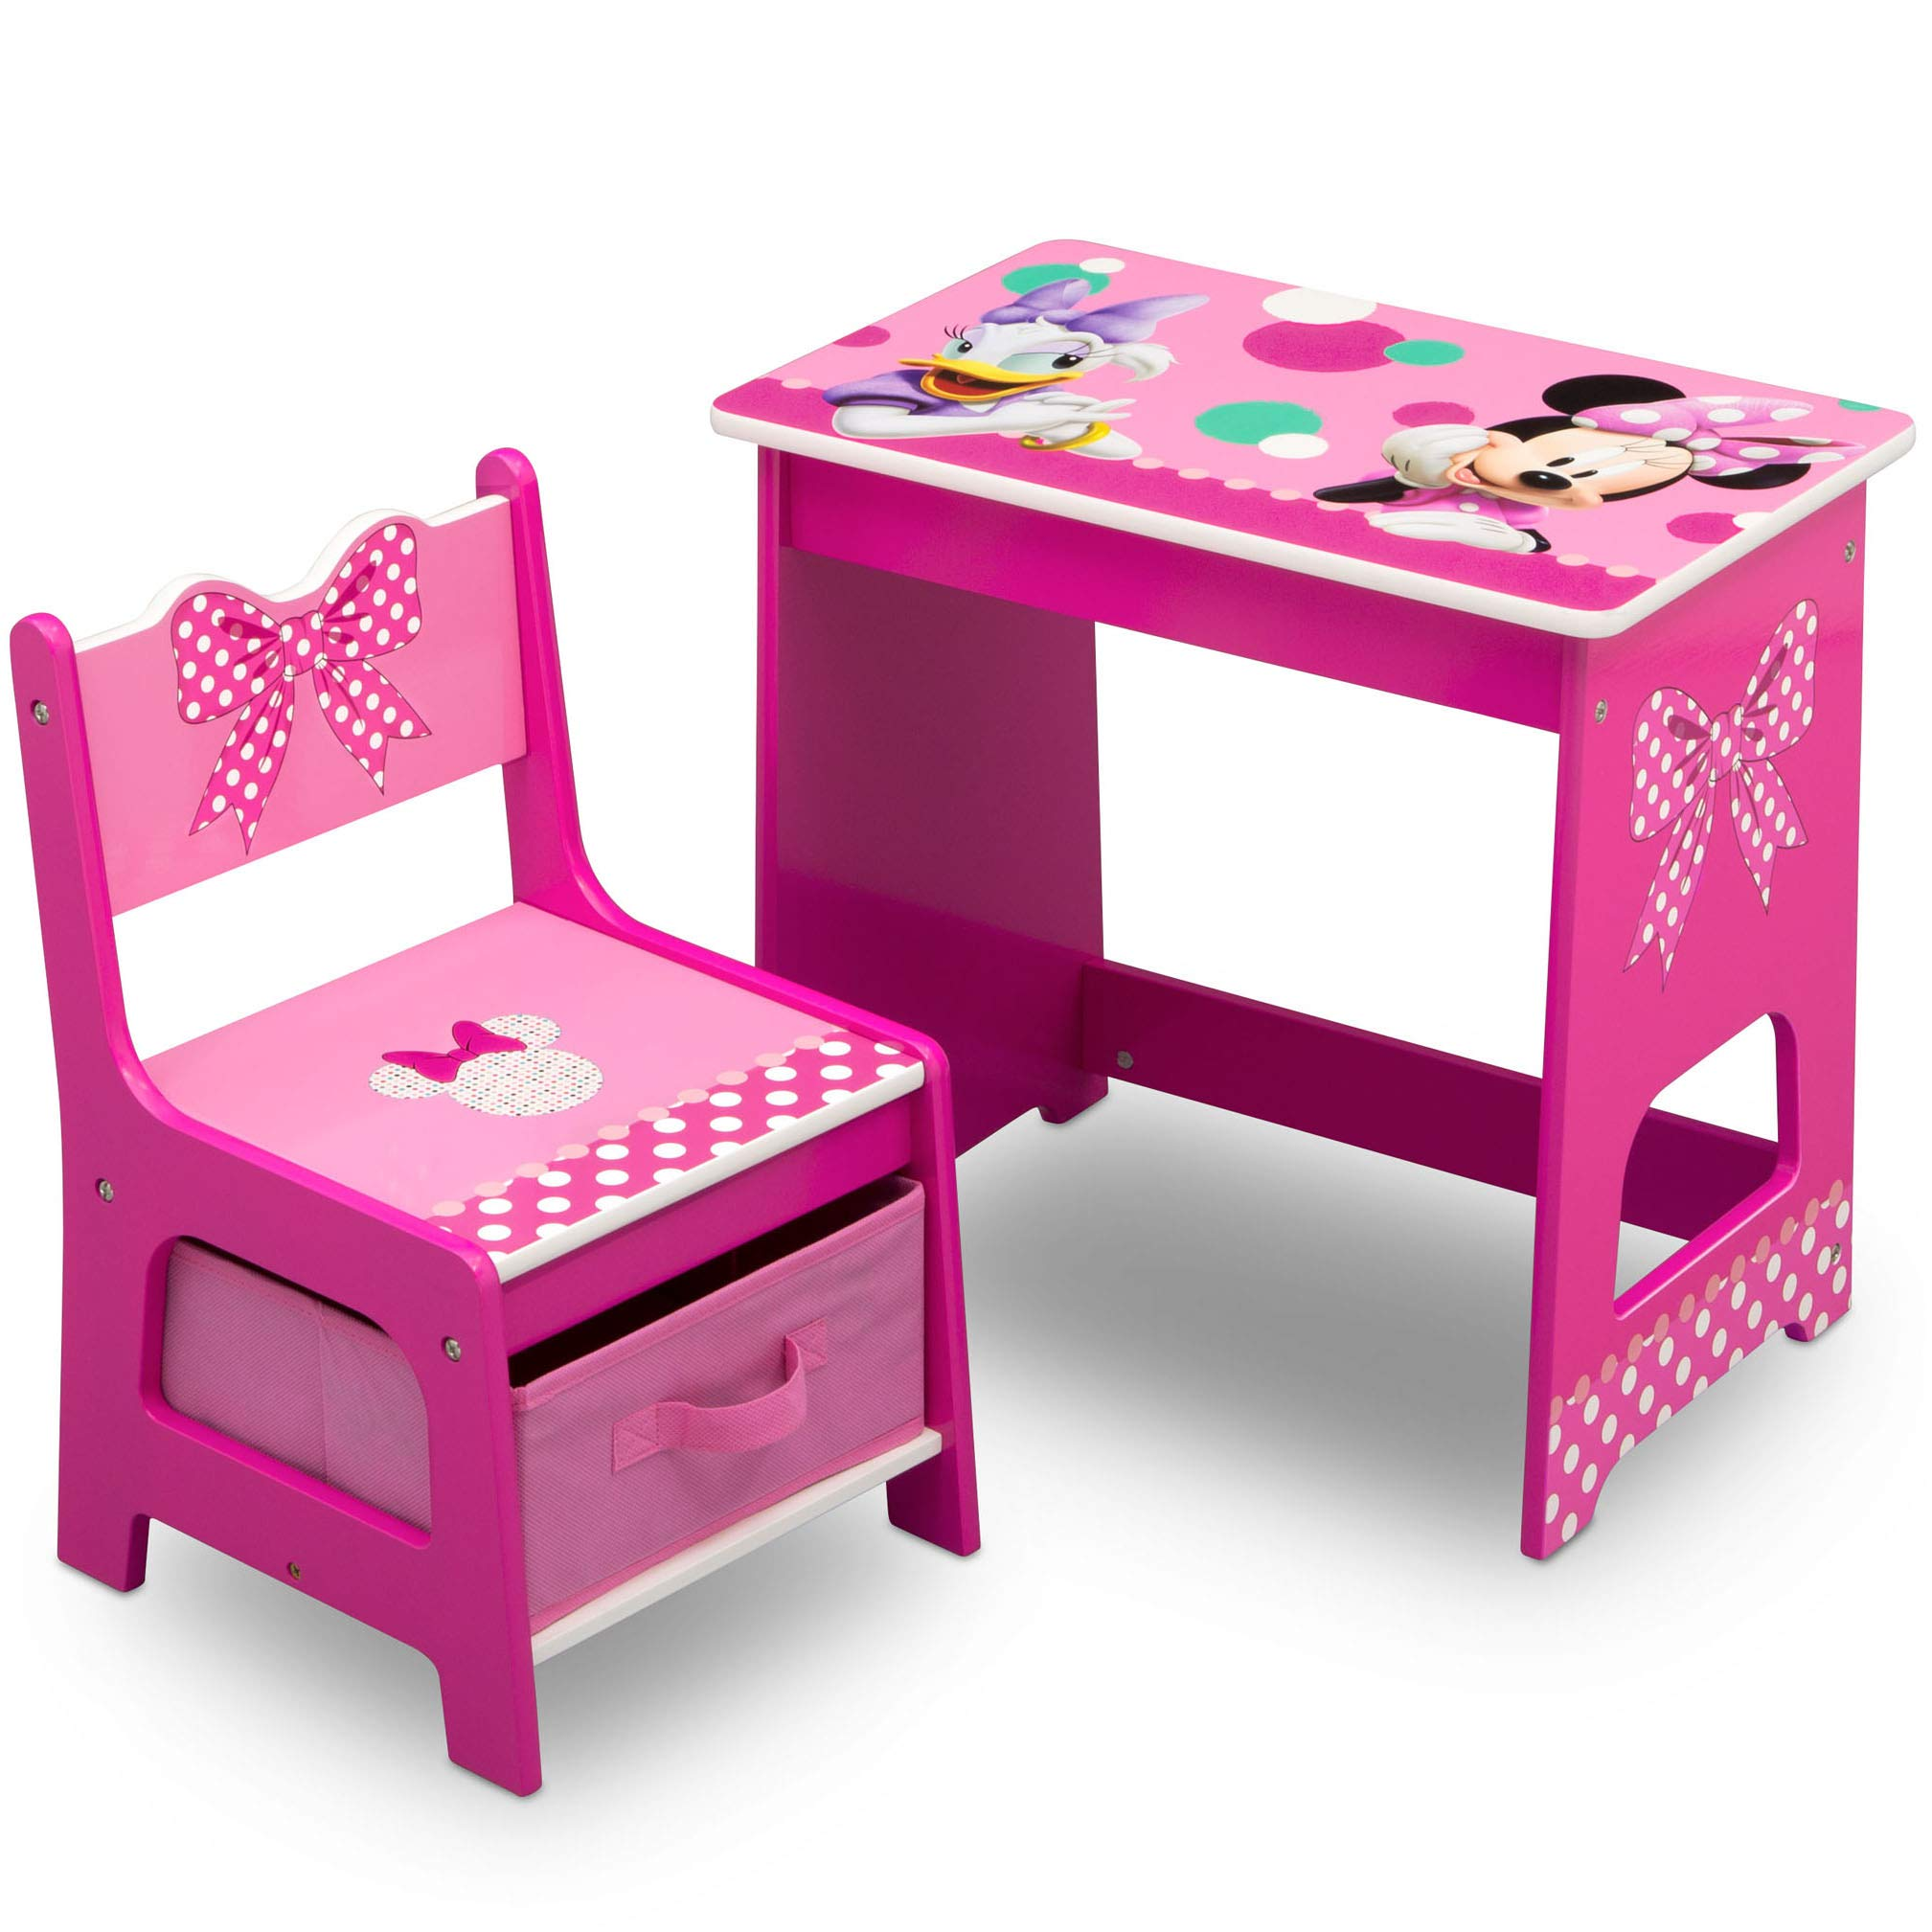 Delta Children Minnie Mouse Kids Wood Desk and Chair Set by Delta Children